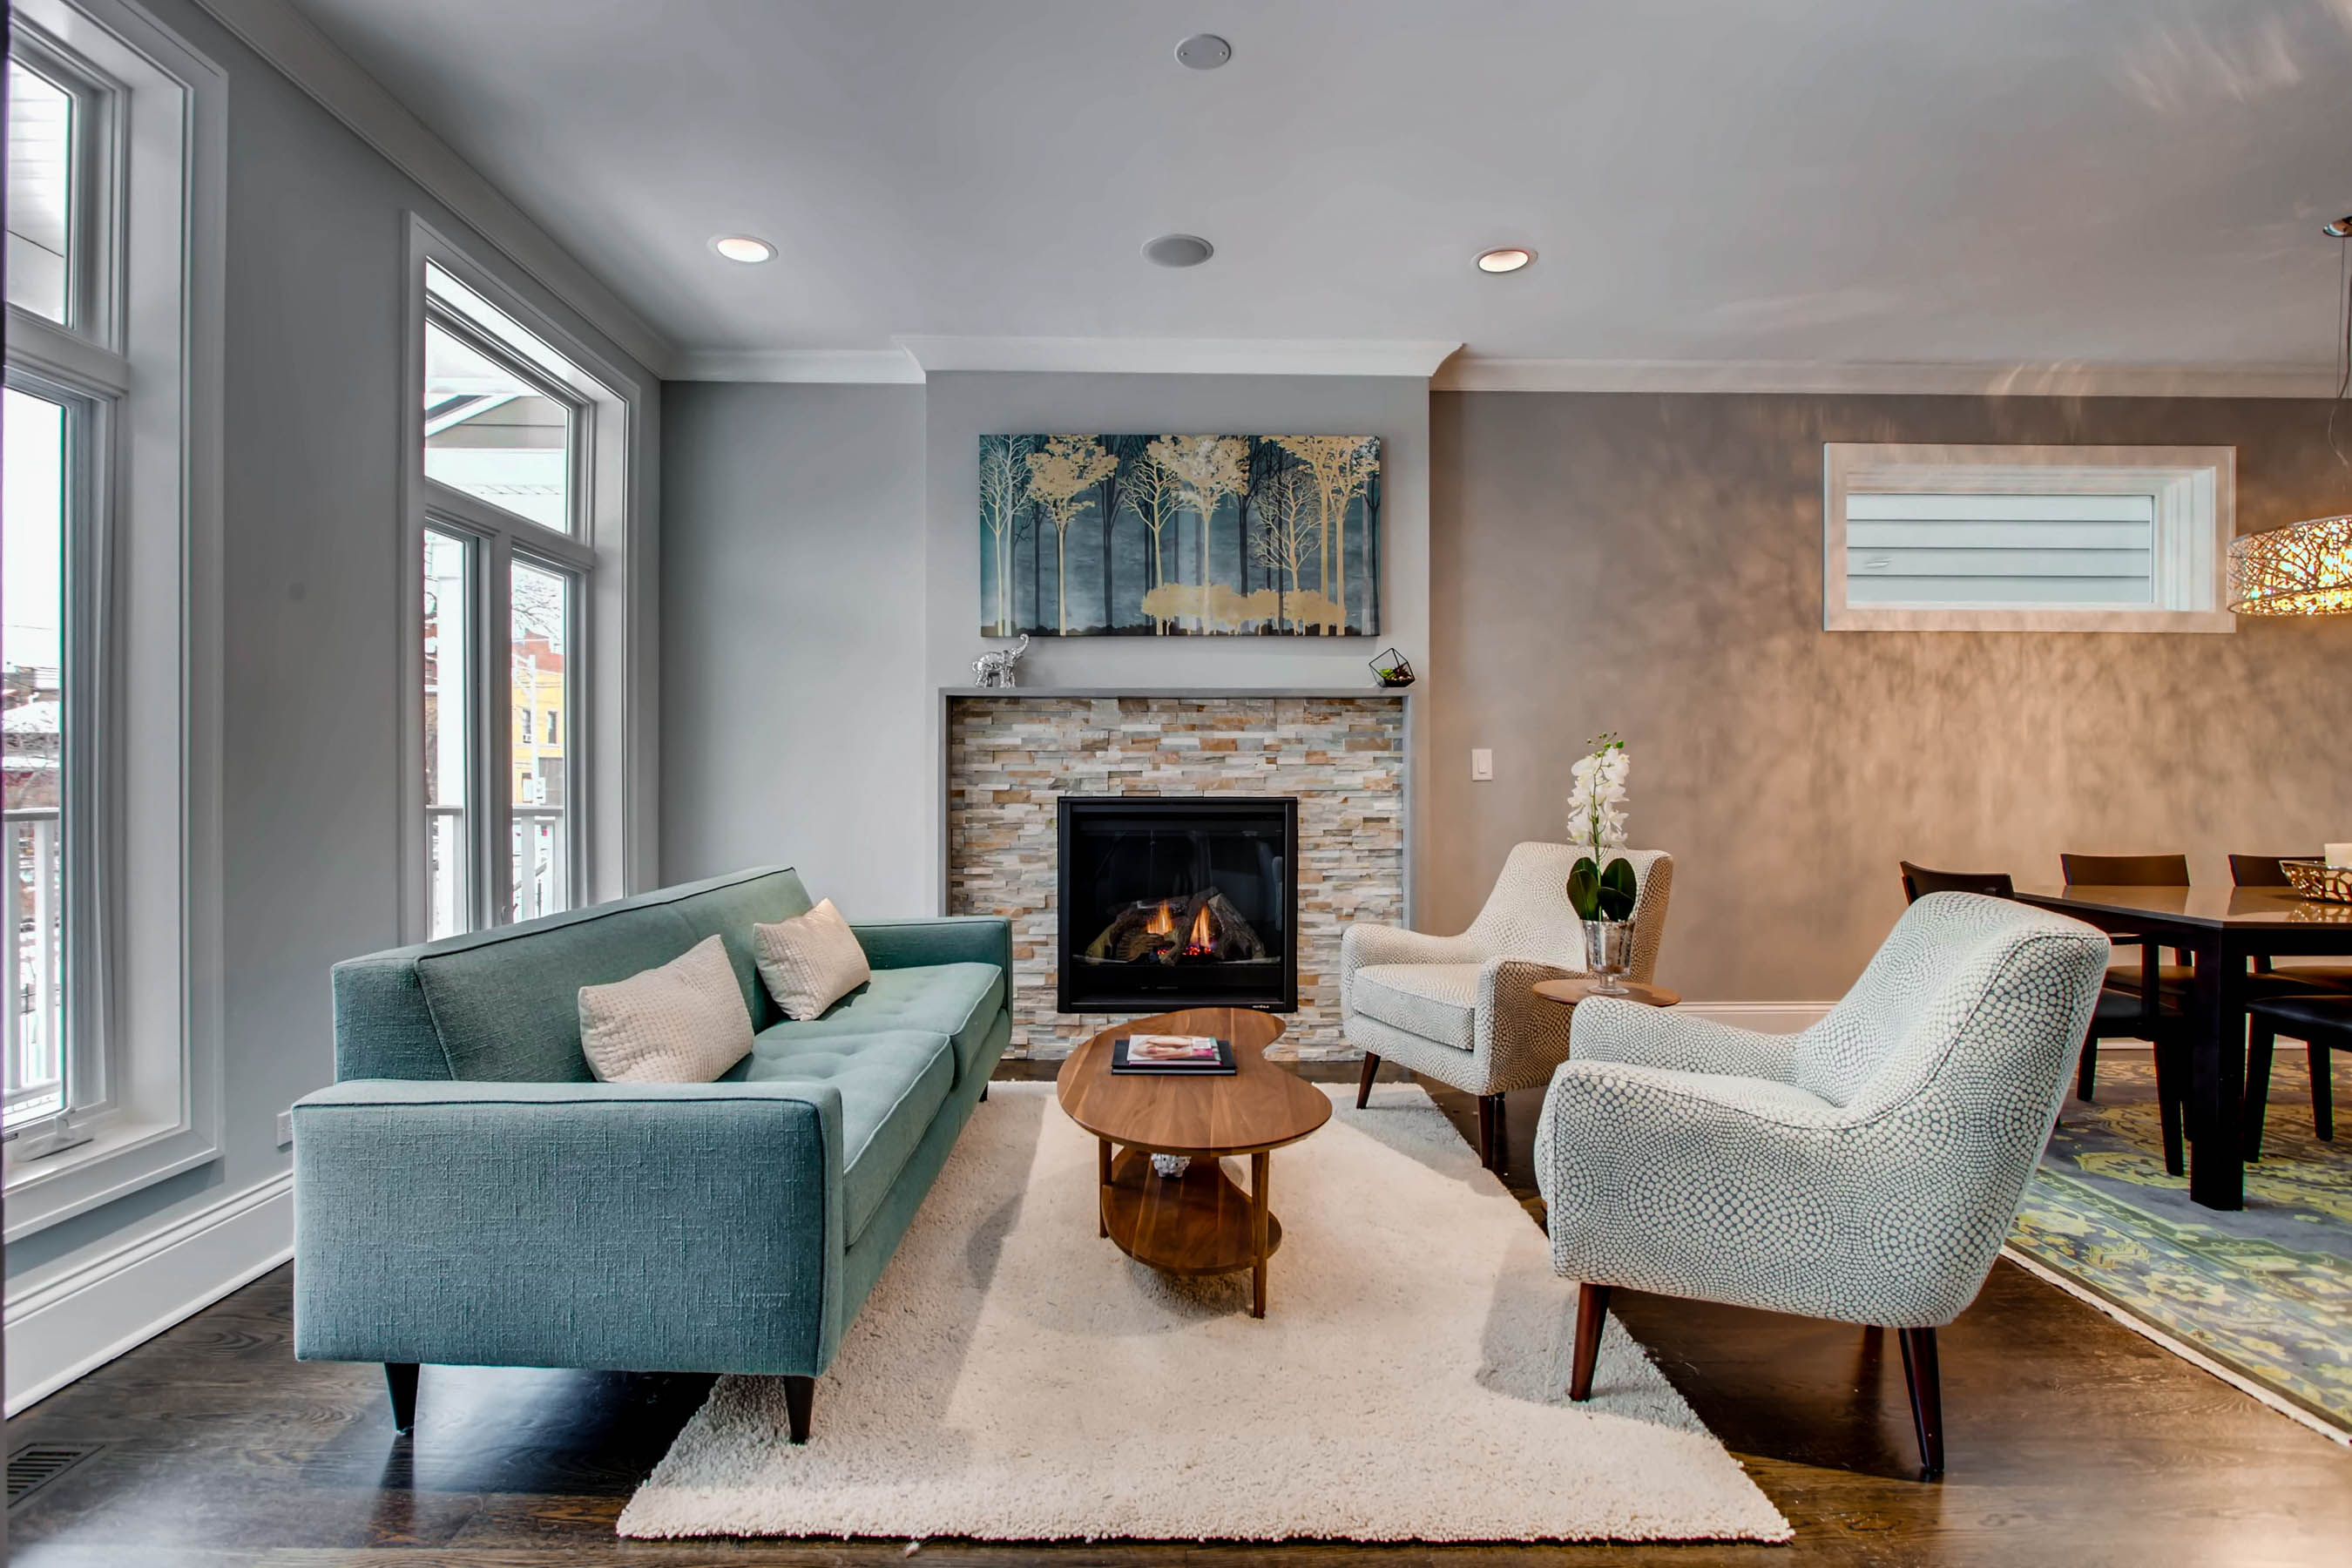 Does your home staging look too sterile Warm things up